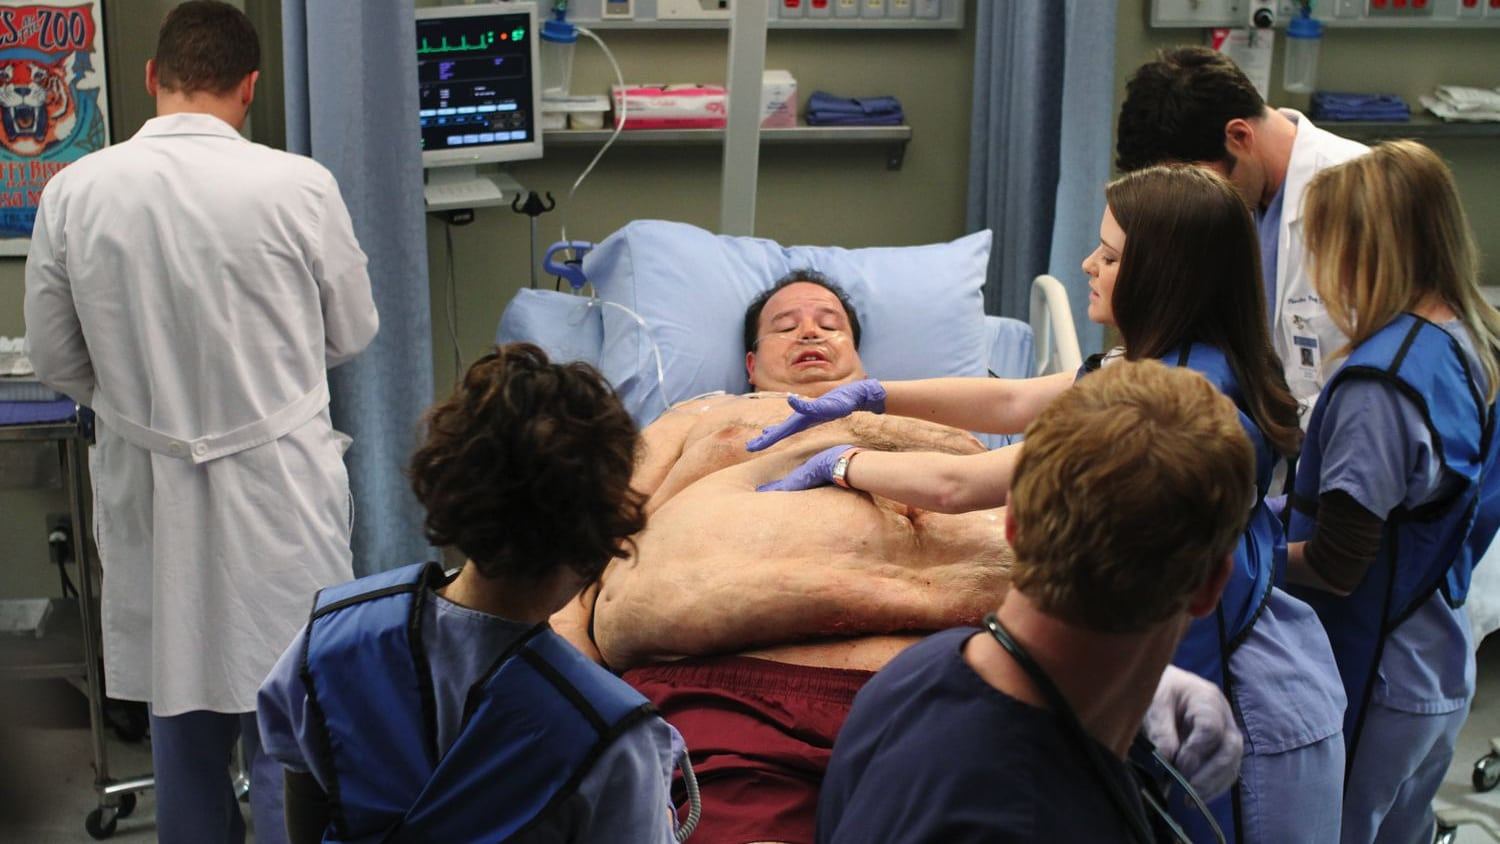 Grey's Anatomy - Season 6 Episode 21 : How Insensitive